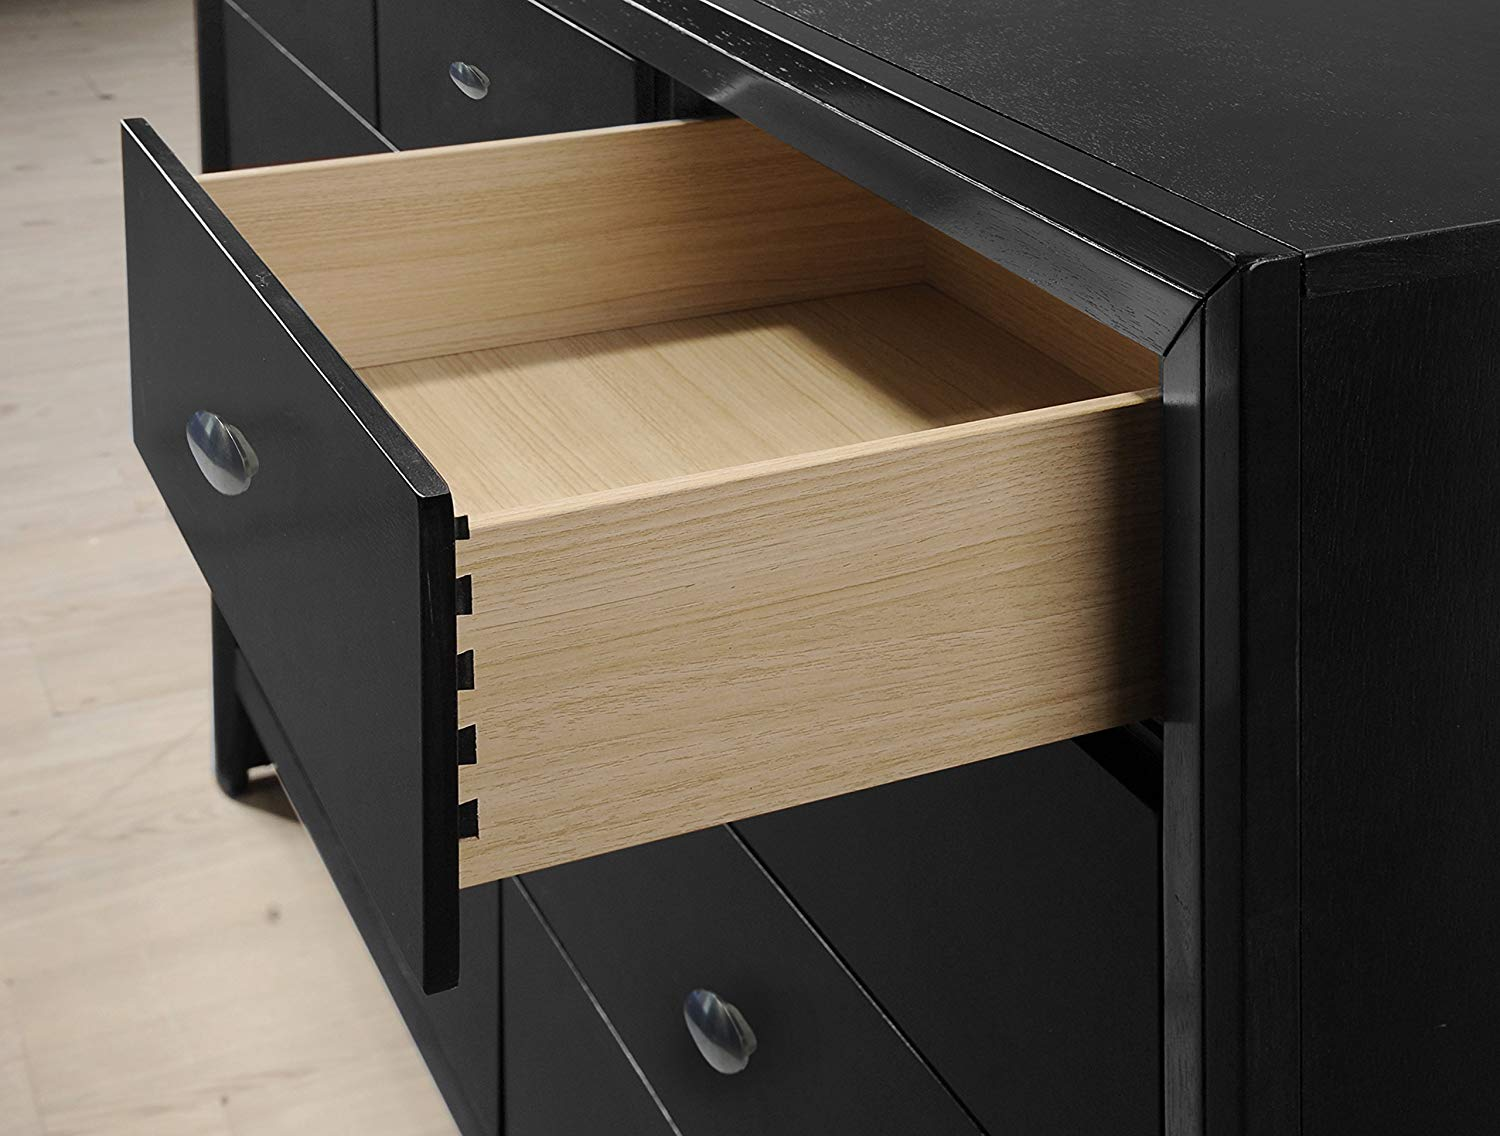 Full-extension, smooth drawer glides ensure easy opening and closing.